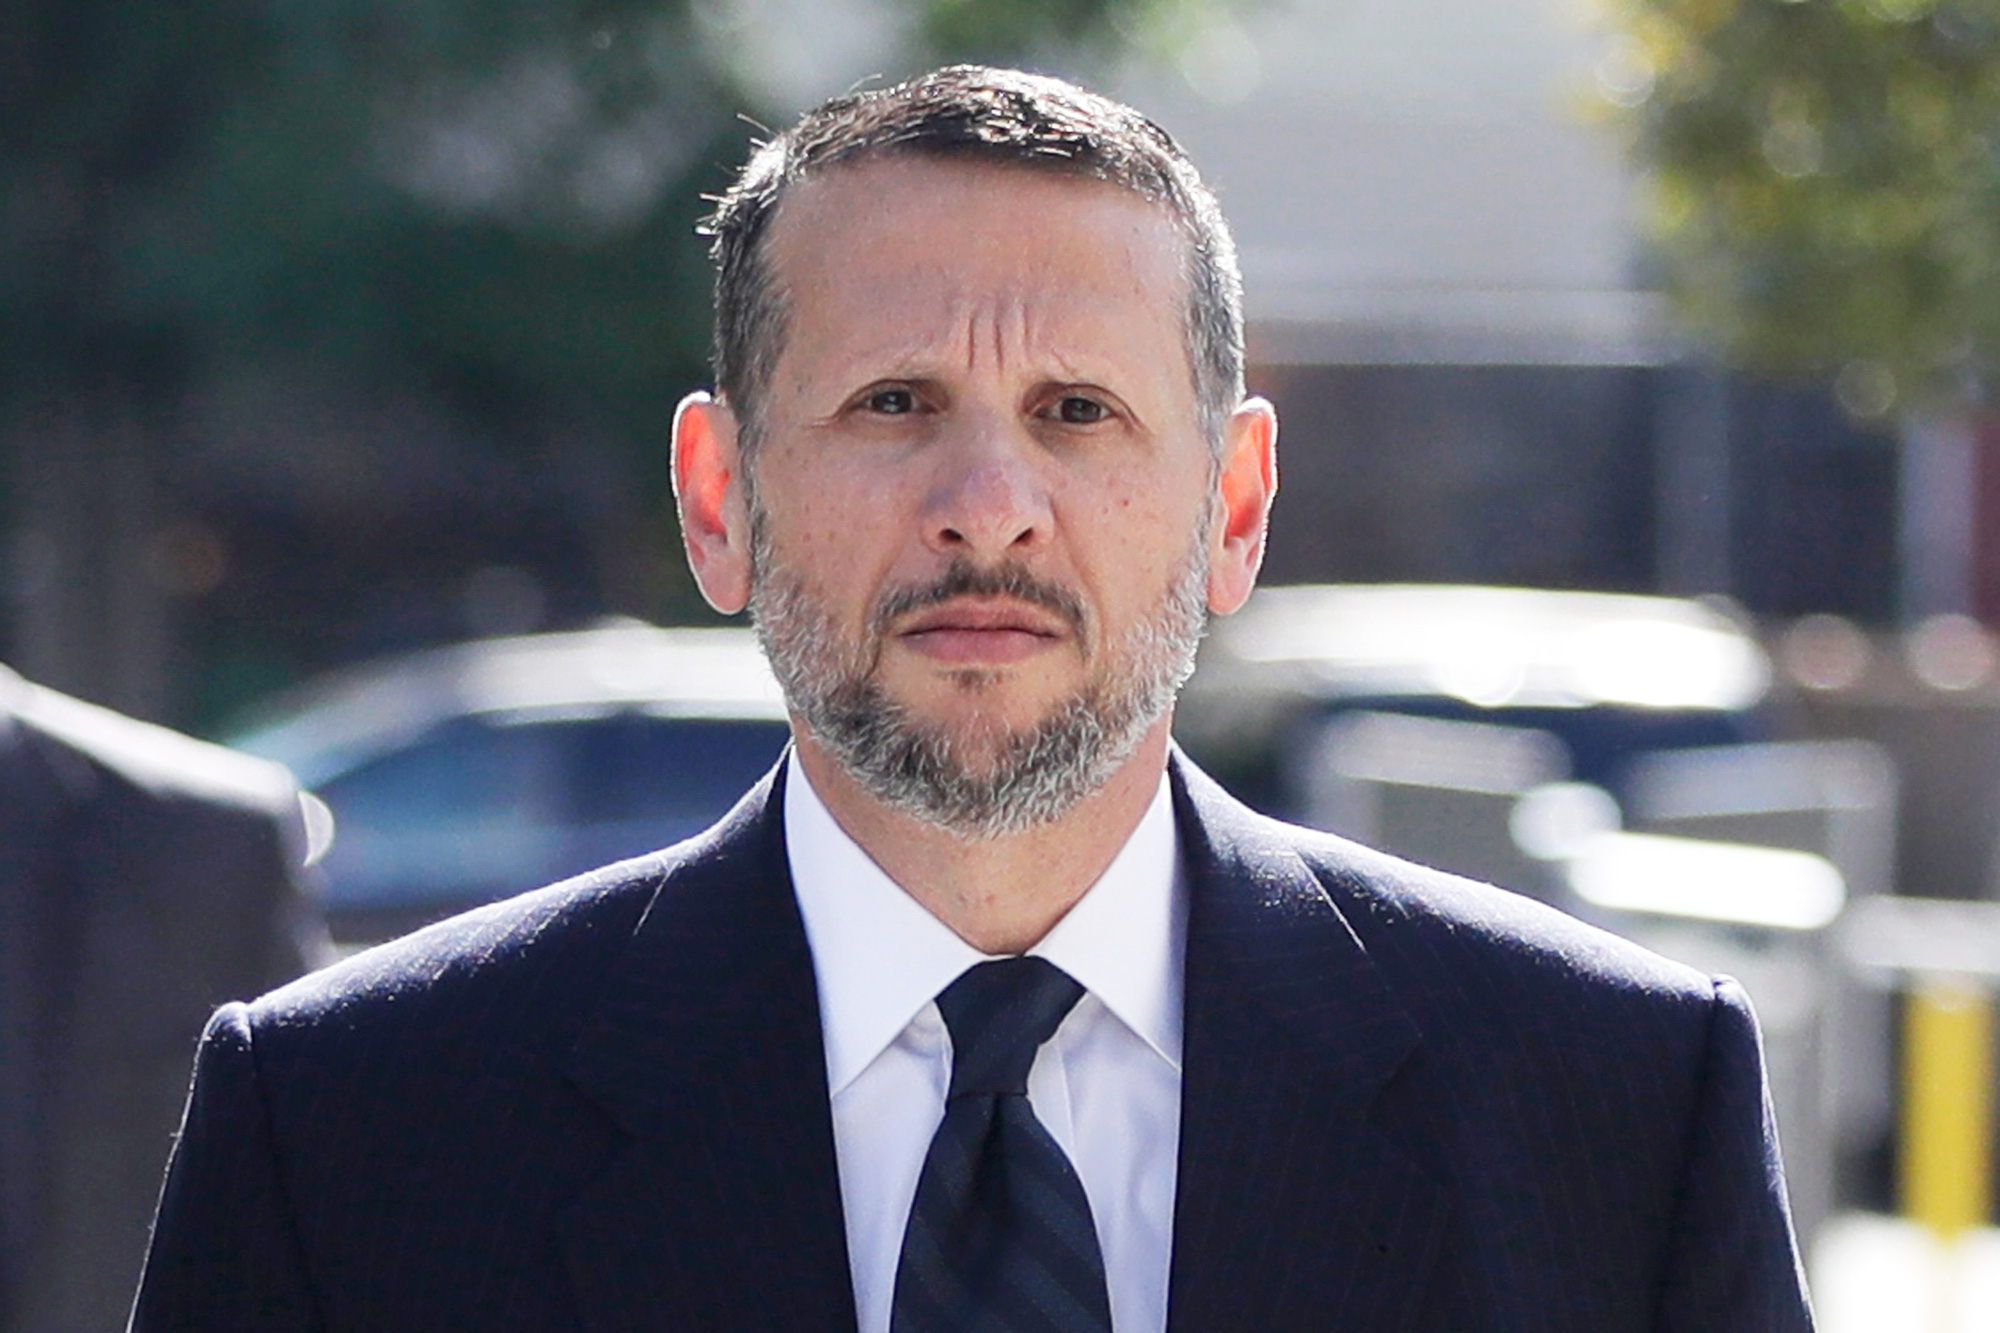 FILE - In this Sept. 23, 2016, file photo, David Wildstein arrives at Martin Luther King Jr. Federal Courthouse in Newark, N.J. Wildstein pleaded guilty last year to orchestrating traffic jams in 2013 to punish a Democratic mayor who didn't endorse Gov. Chris Christie. The former high-ranking official at the Port Authority who attended high school with Christie, testified that Christie was told about the traffic in Fort Lee on the third day of the gridlock during a Sept. 11 memorial event. (AP Photo/Julio Cortez, File)